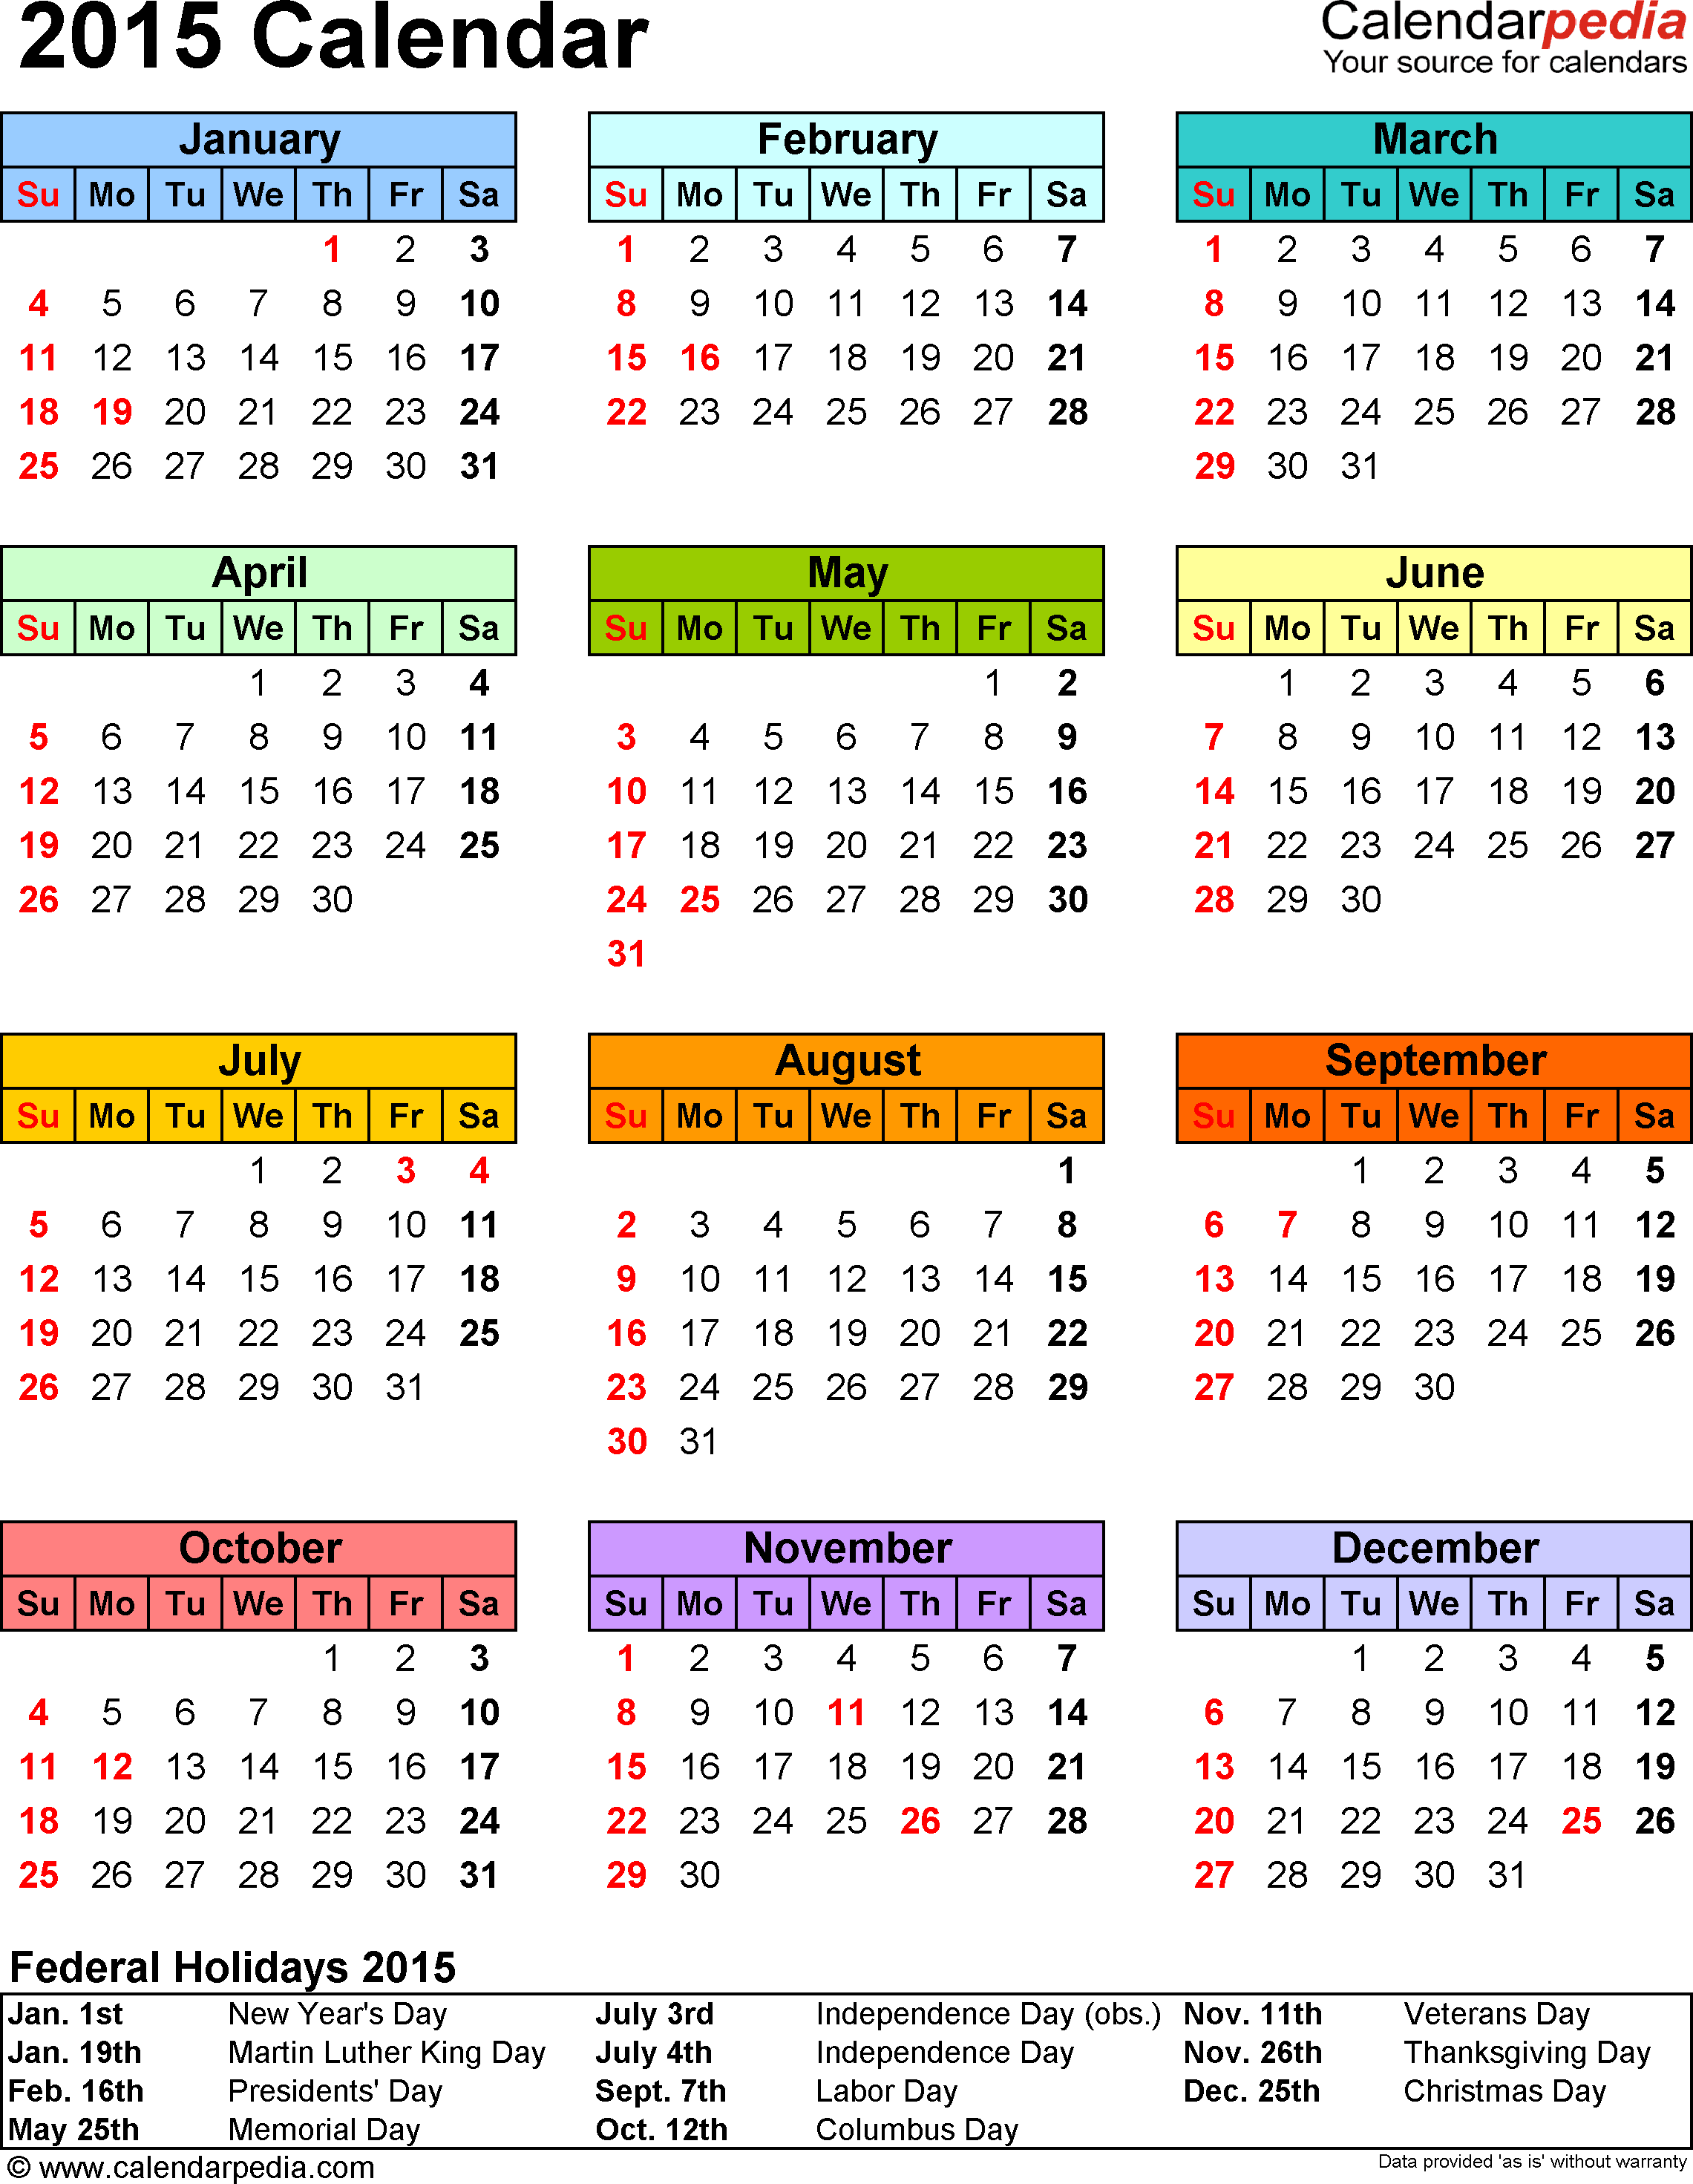 Template 14: 2015 Calendar for Word, 1 page, portrait orientation, in color